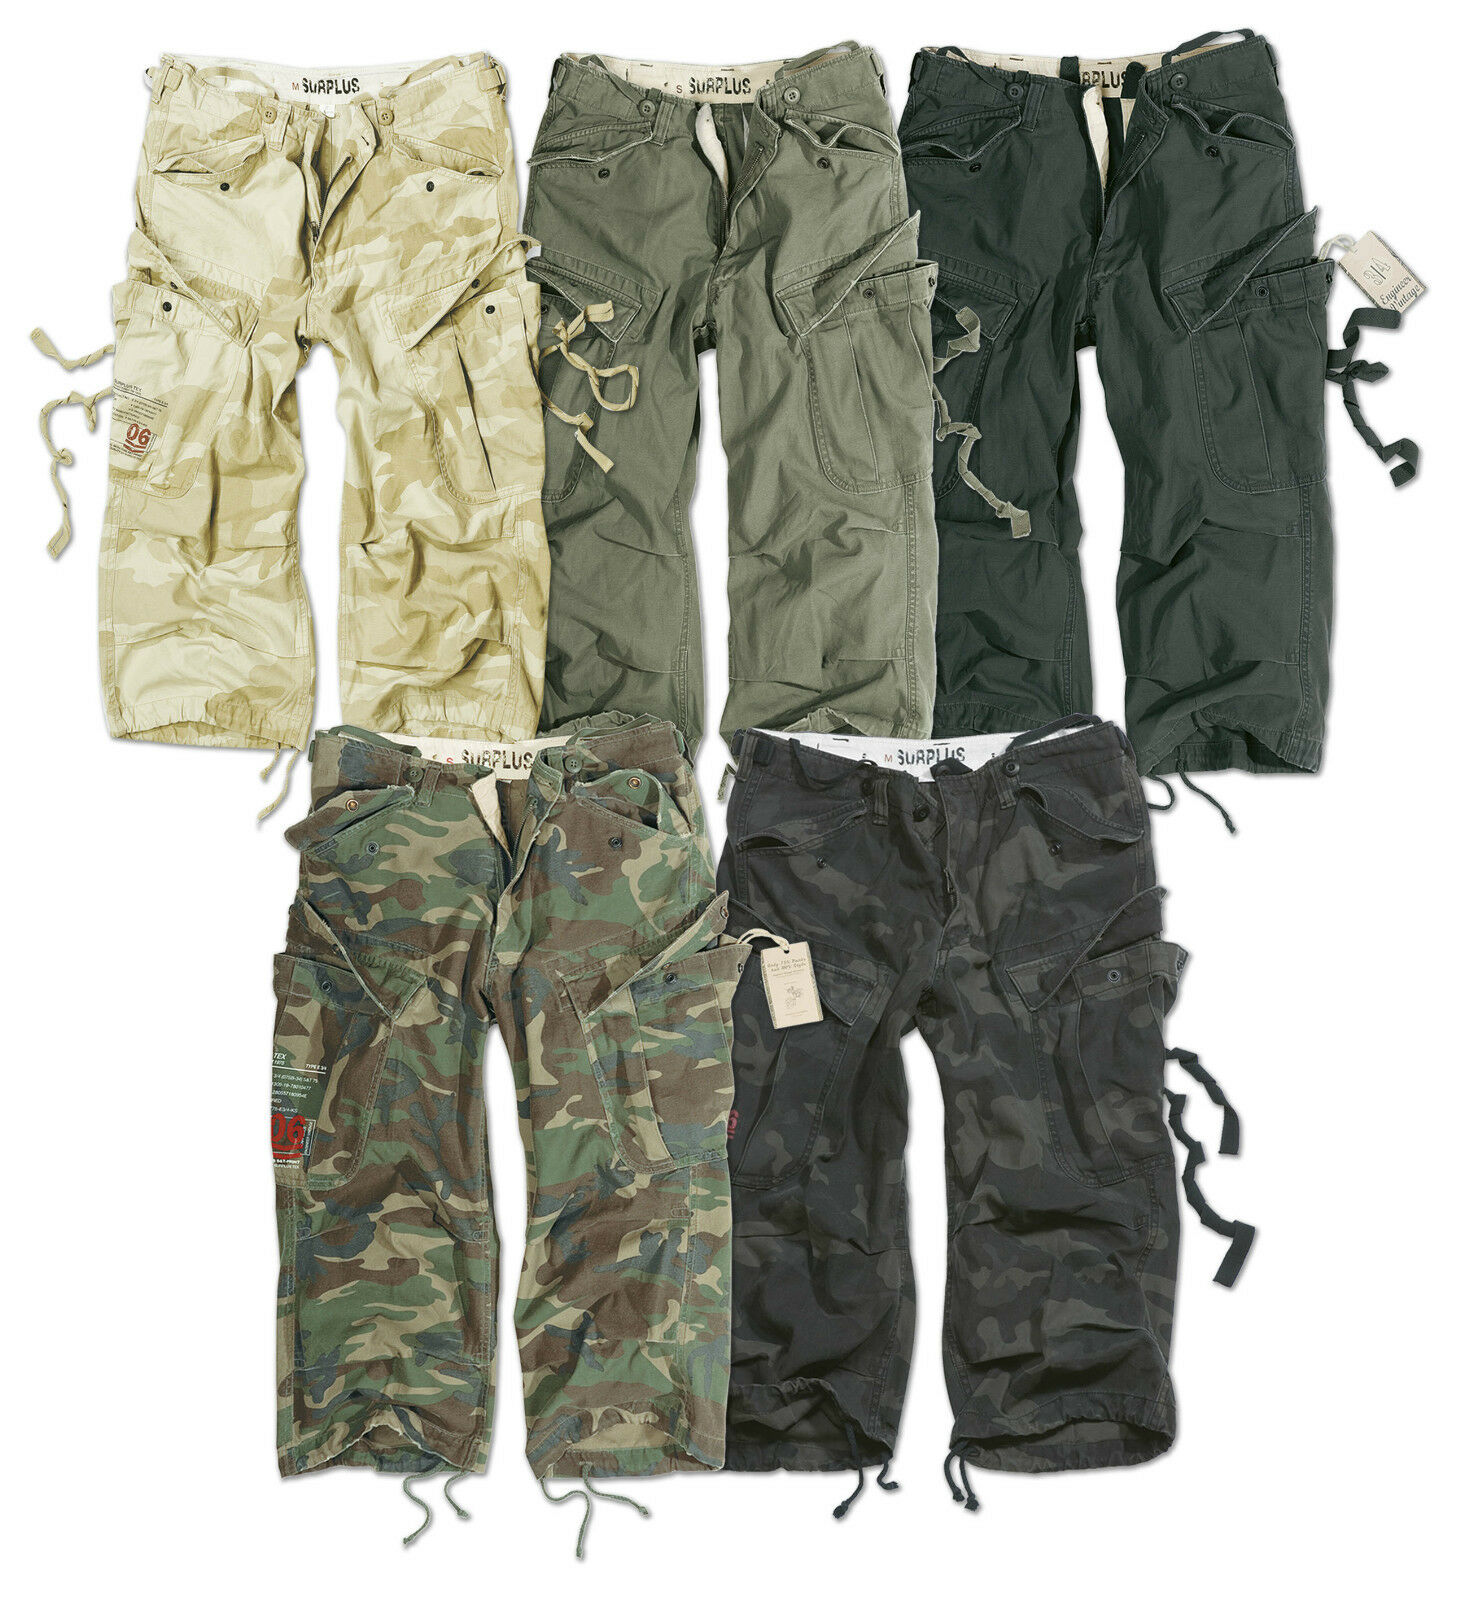 SURPLUS ARMY MENS ENGINEER 3 4  CARGO PANTS BELOW KNEE ARMY COMBAT LONG SHORTS  online store